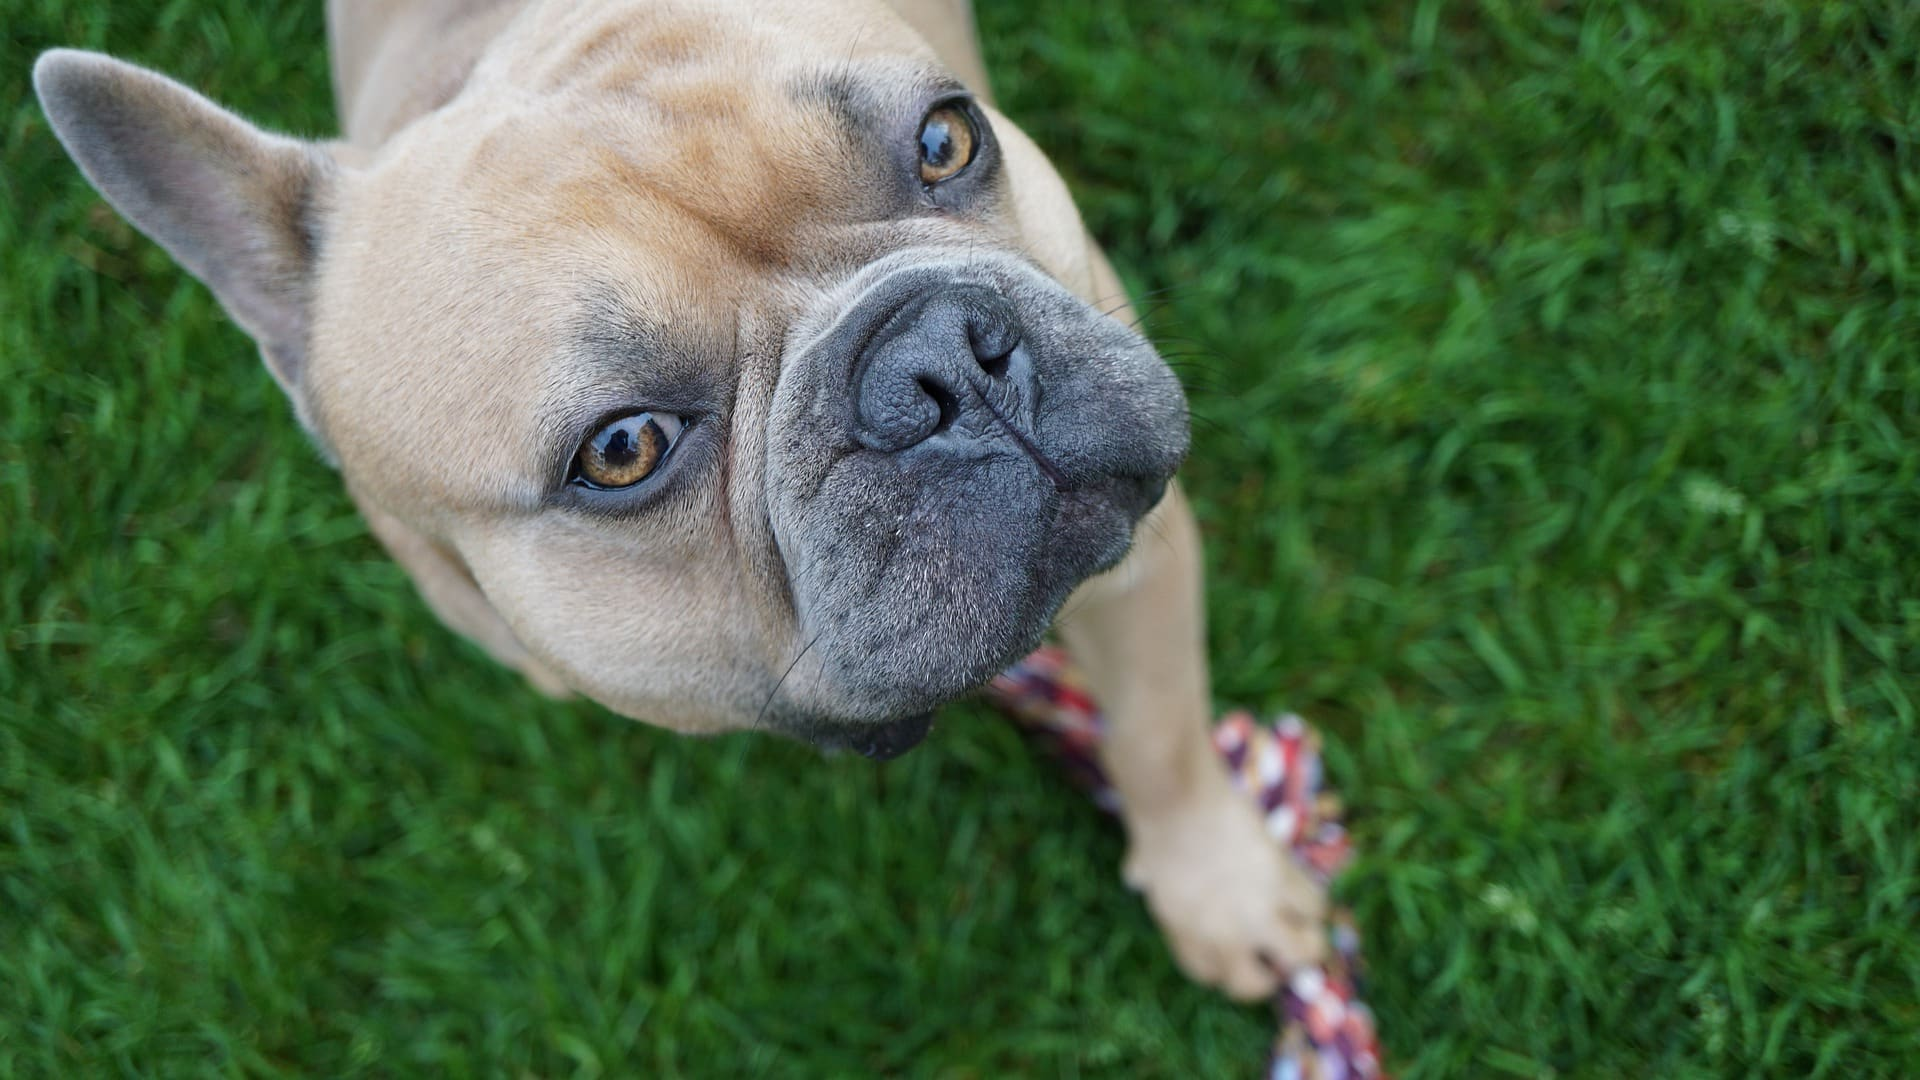 10 phrases your dog would say to you